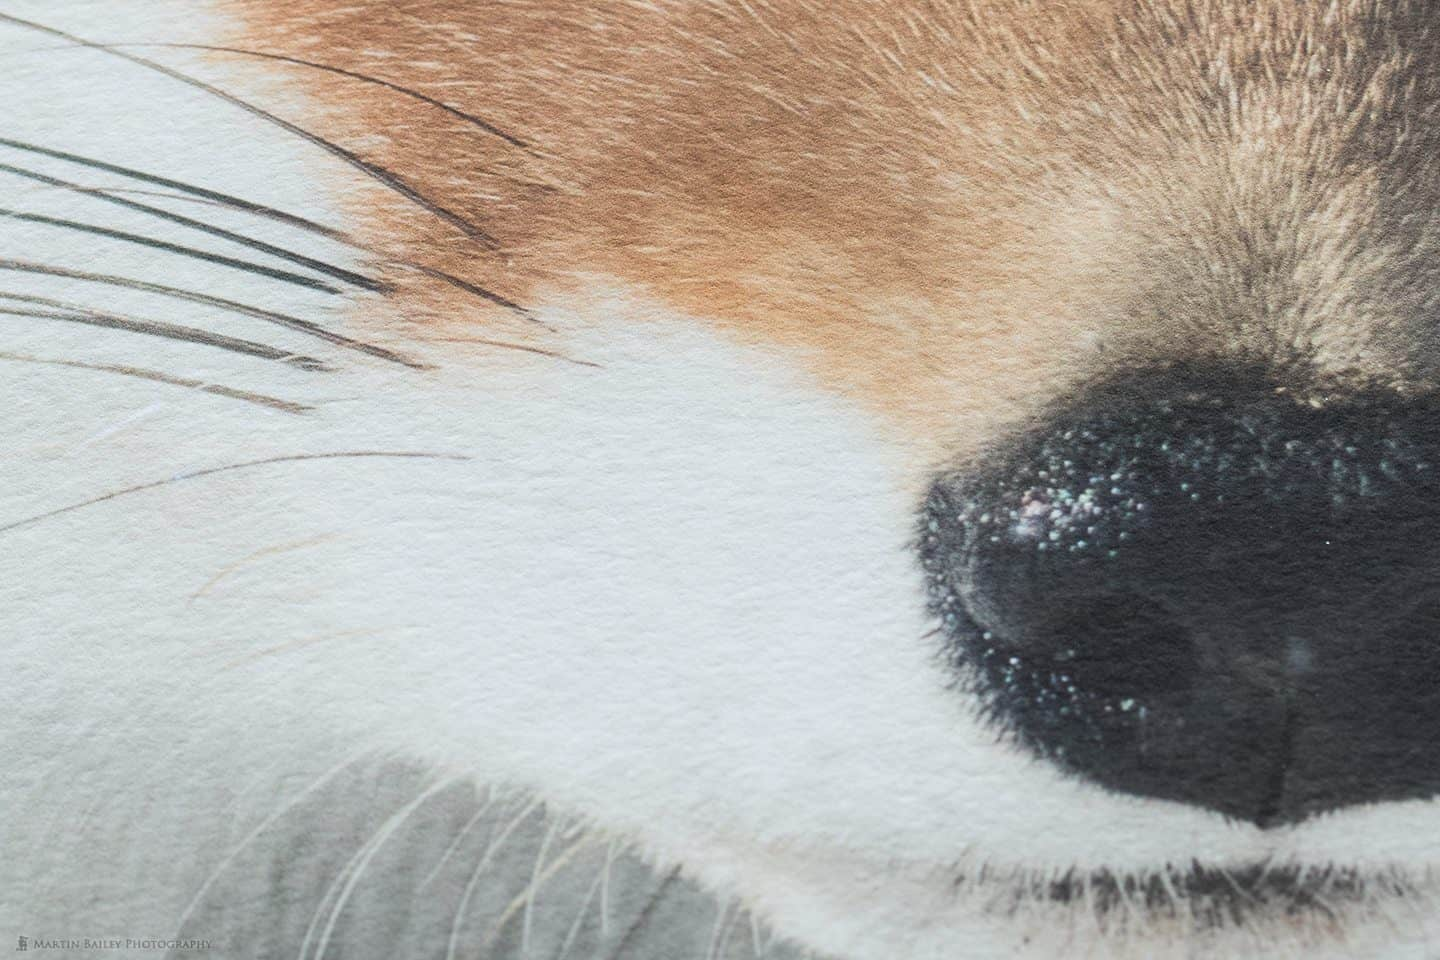 50% Crop from the Photo of Fox Print